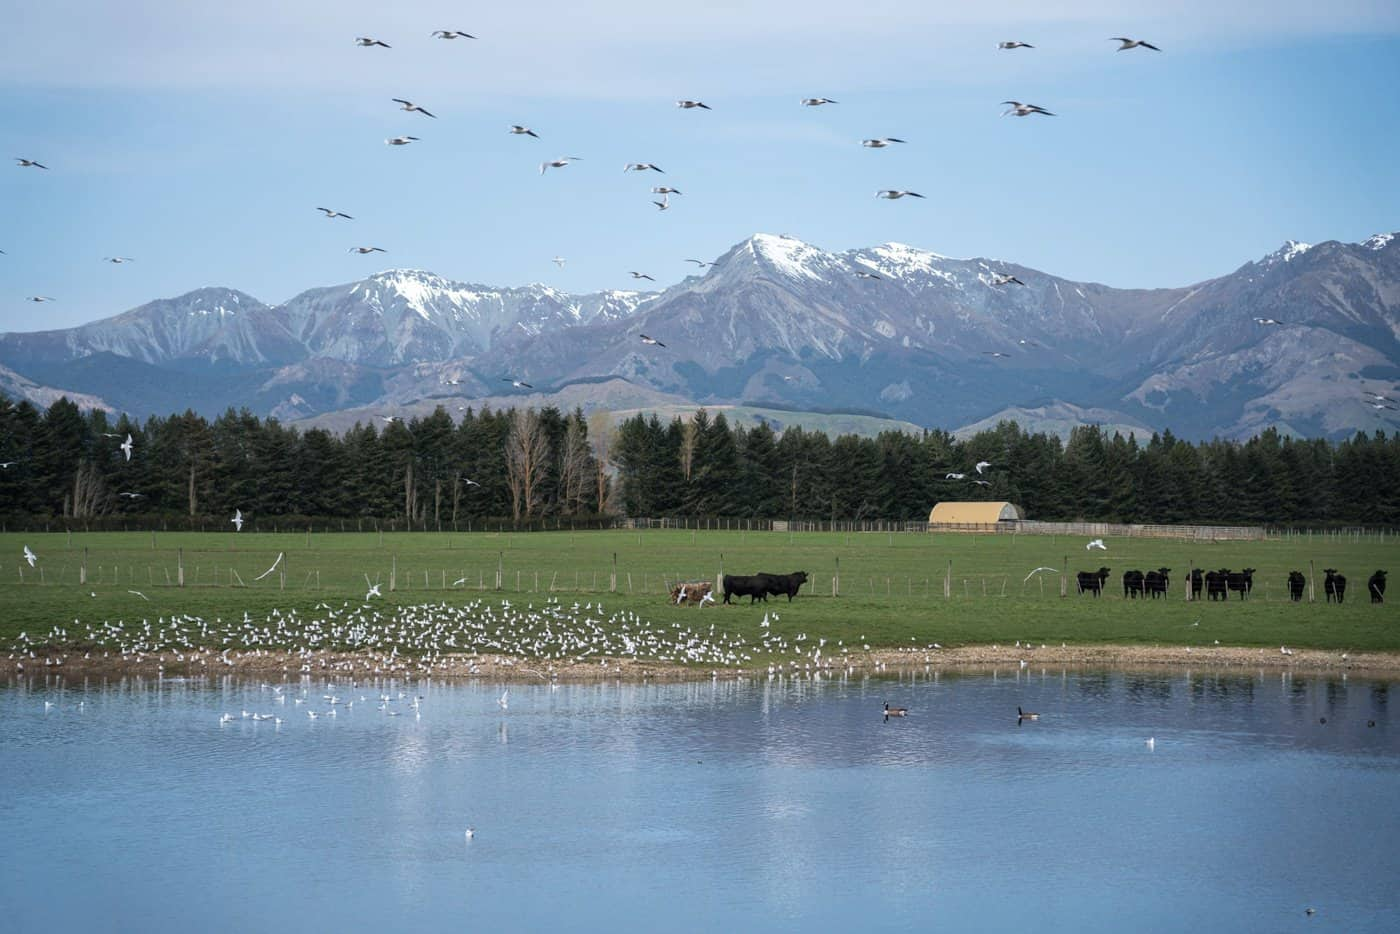 Spring fever gets the wildlife excited in New Zealand in November.